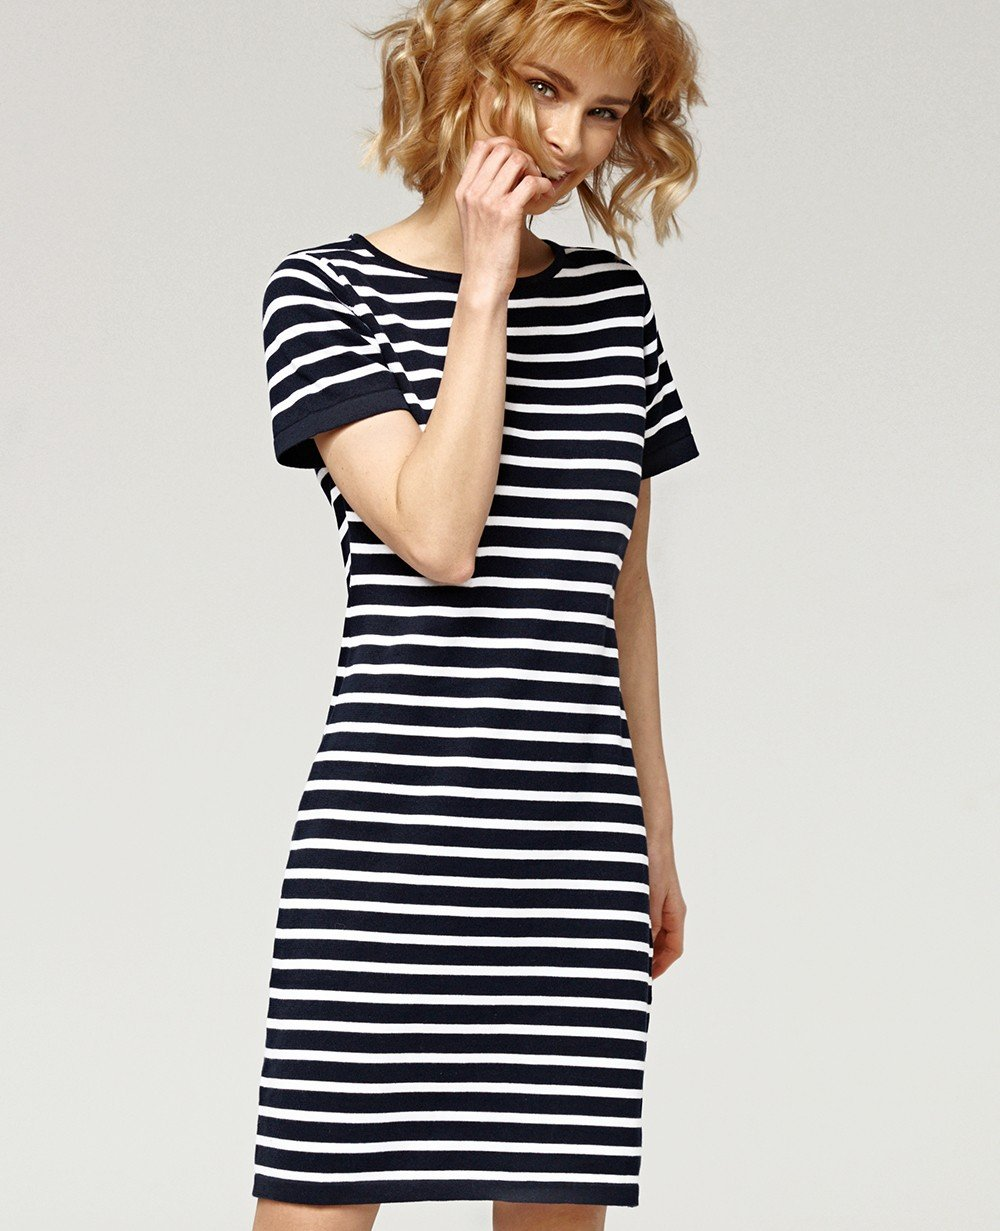 Misfit London Daisy Navy and White Stripe British Lifestyle T-shirt Dress